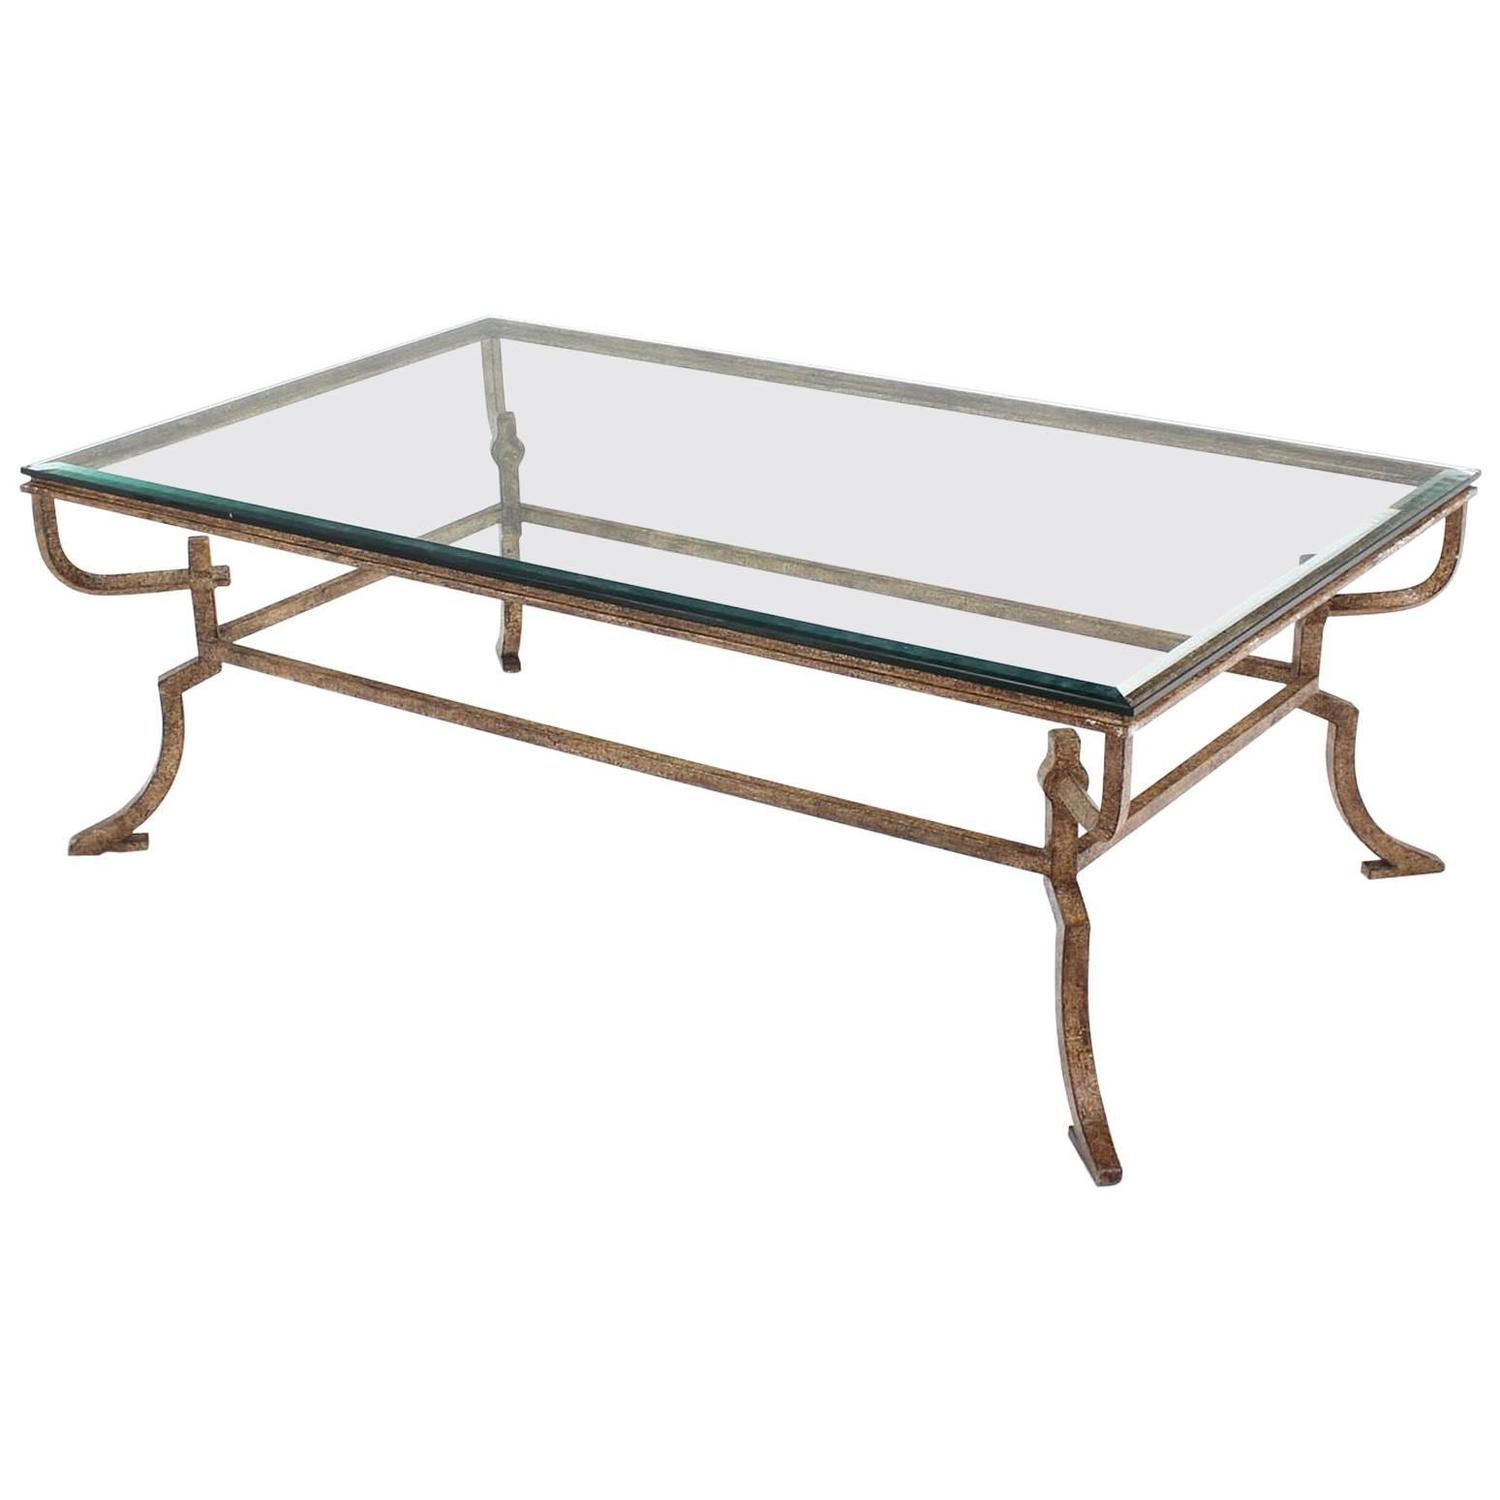 Heavy wrought iron studio work base glass top coffee table for sale at 1stdibs Wrought iron coffee tables